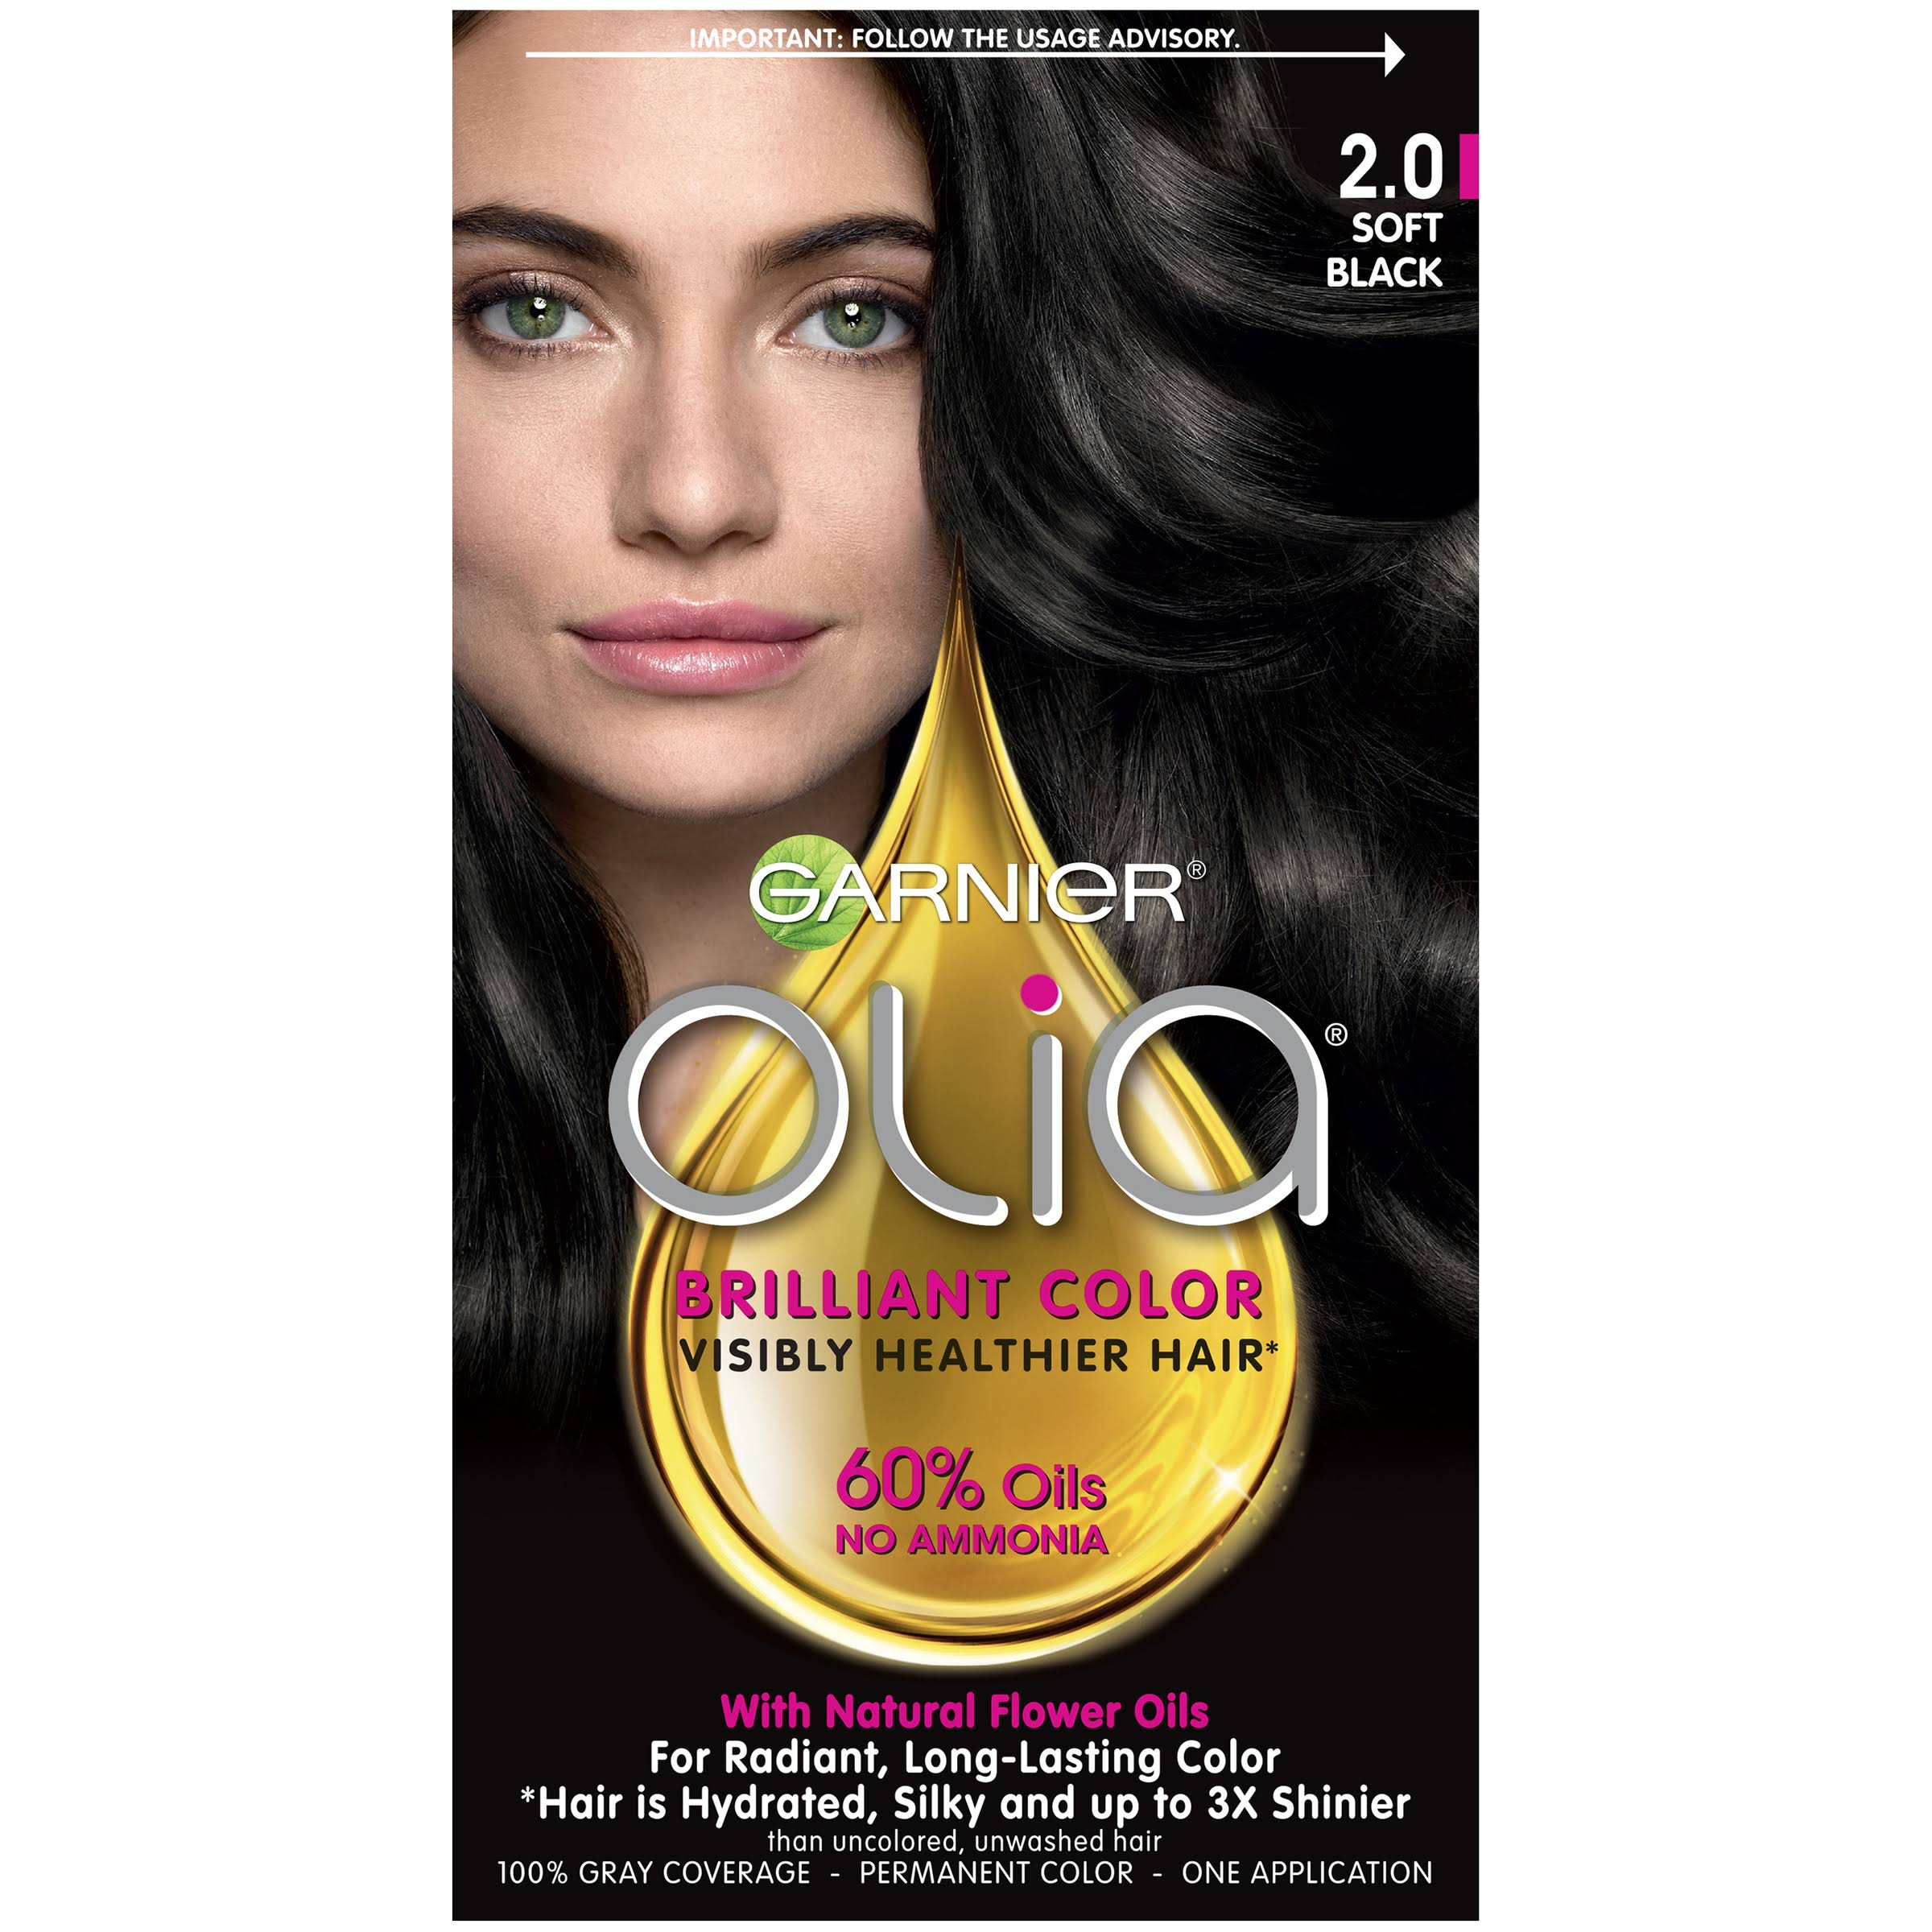 Garnier Olia Oil Powered Permanent Hair Color - 2.0 Soft Black